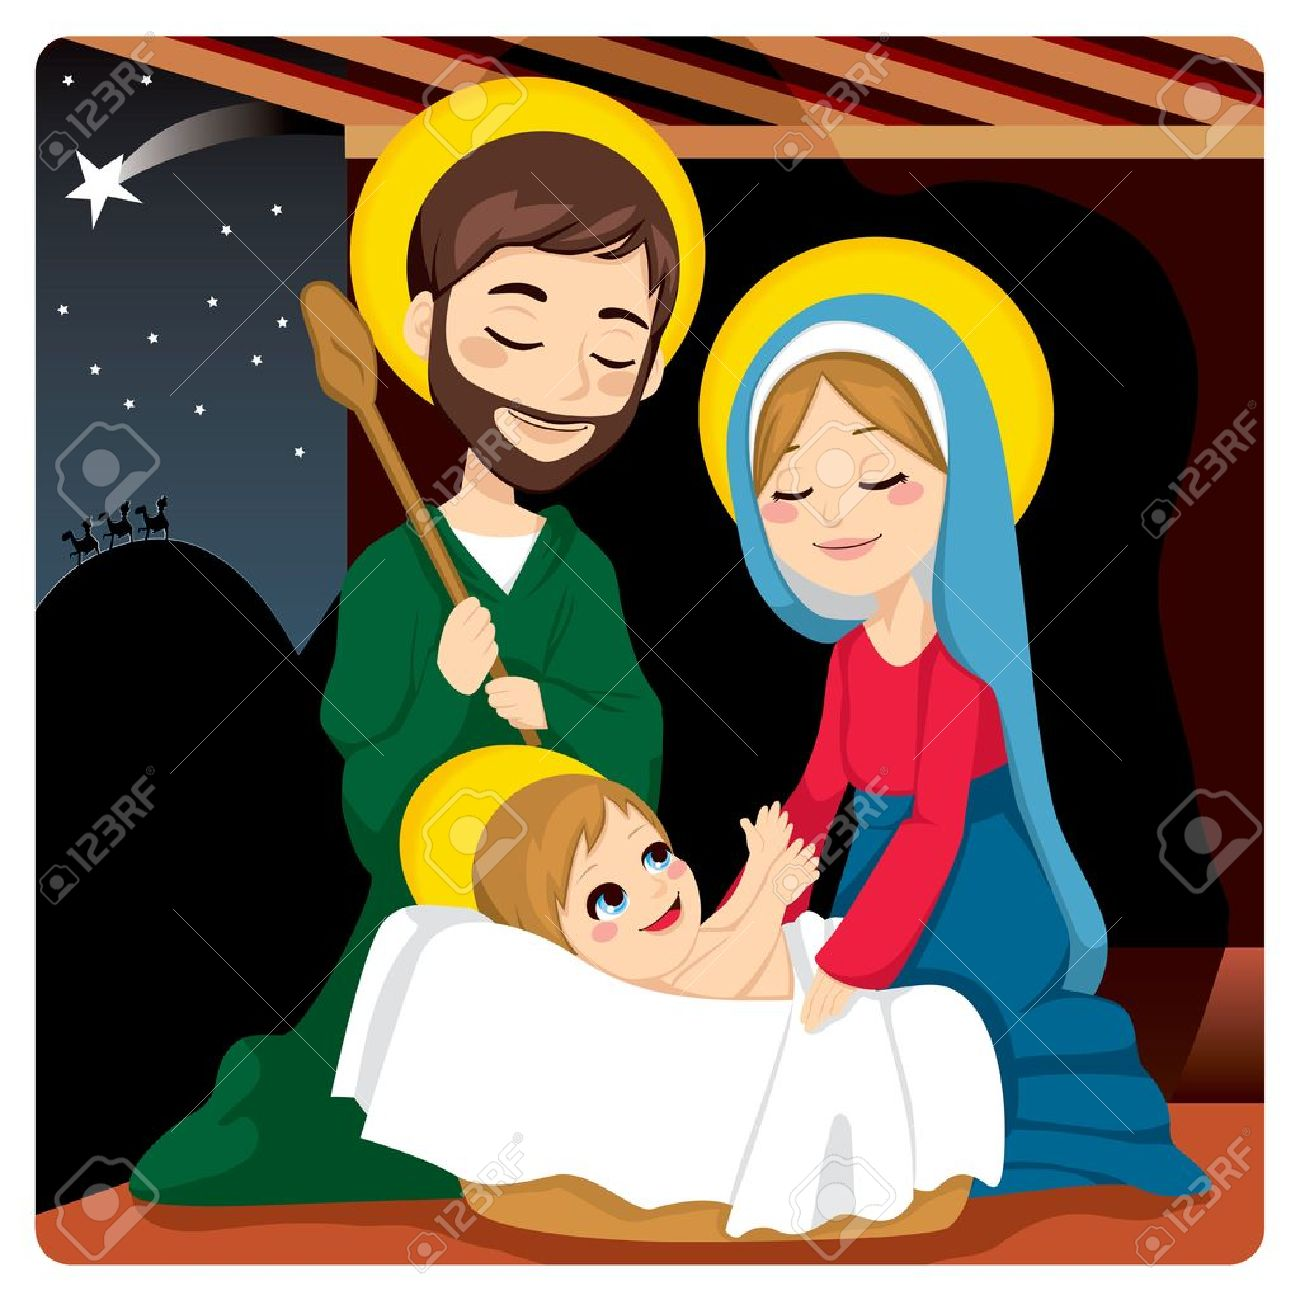 Clipart mary and baby jesus clip transparent Joseph And Mary Joyful With Baby Jesus Laughing And Three Wise ... clip transparent